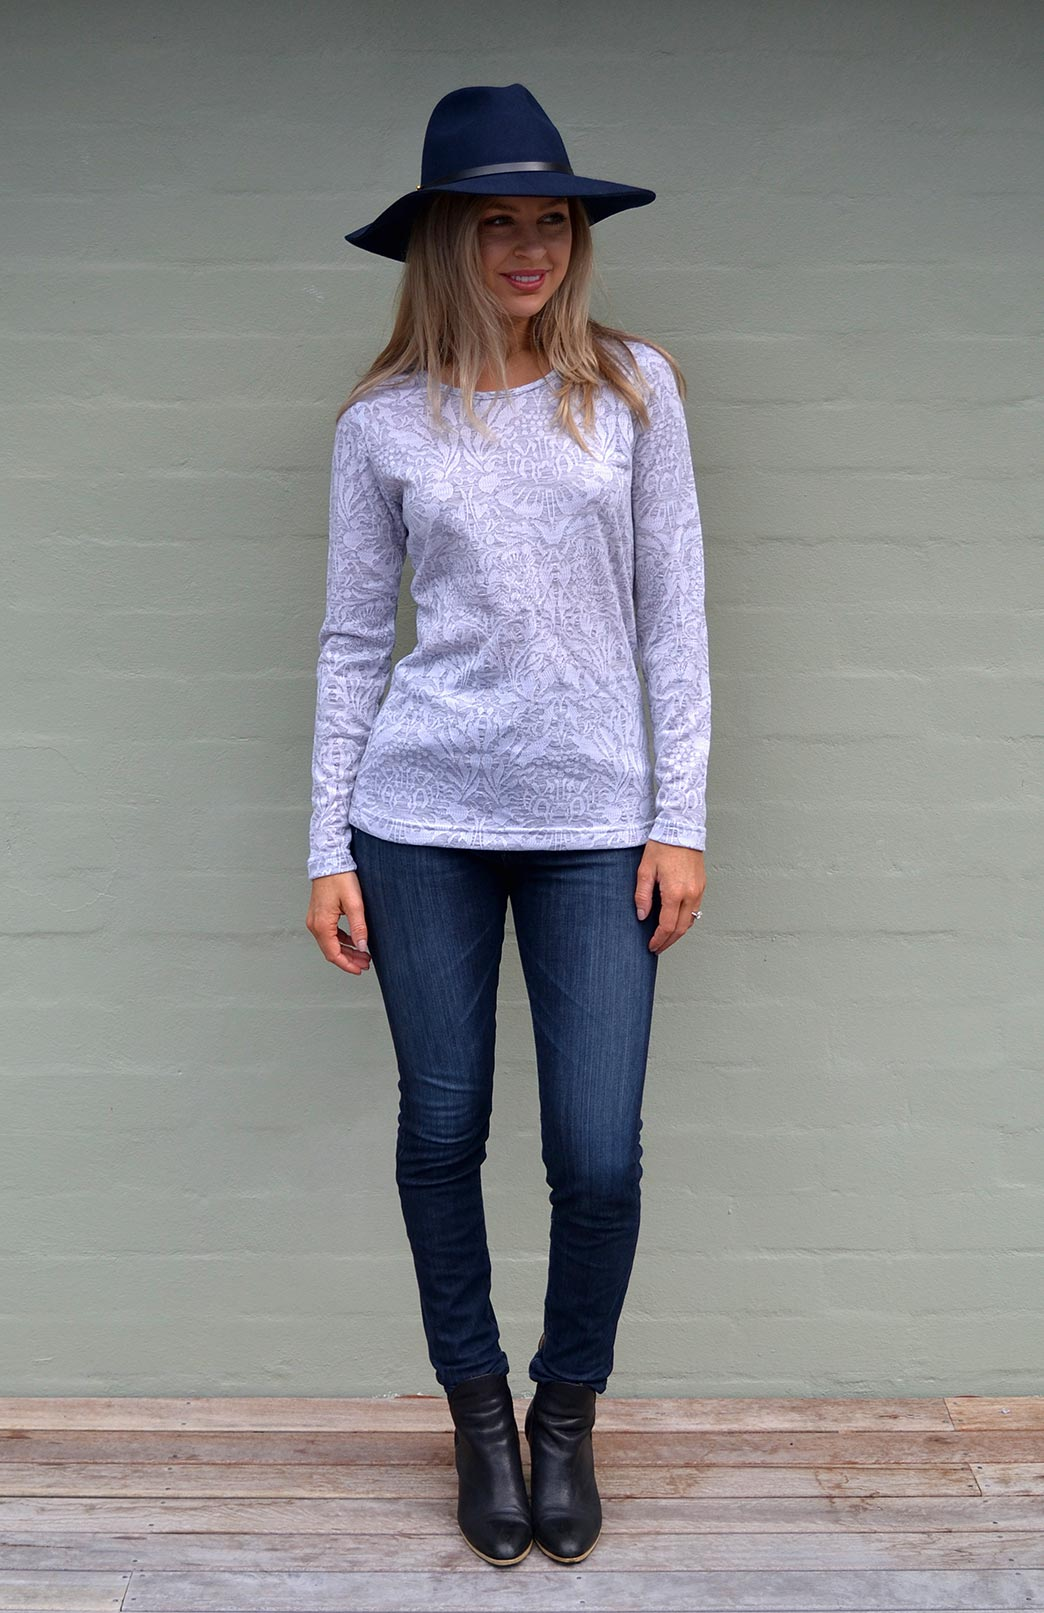 Patterned Round Neck Top in Soft Grey and White Floral